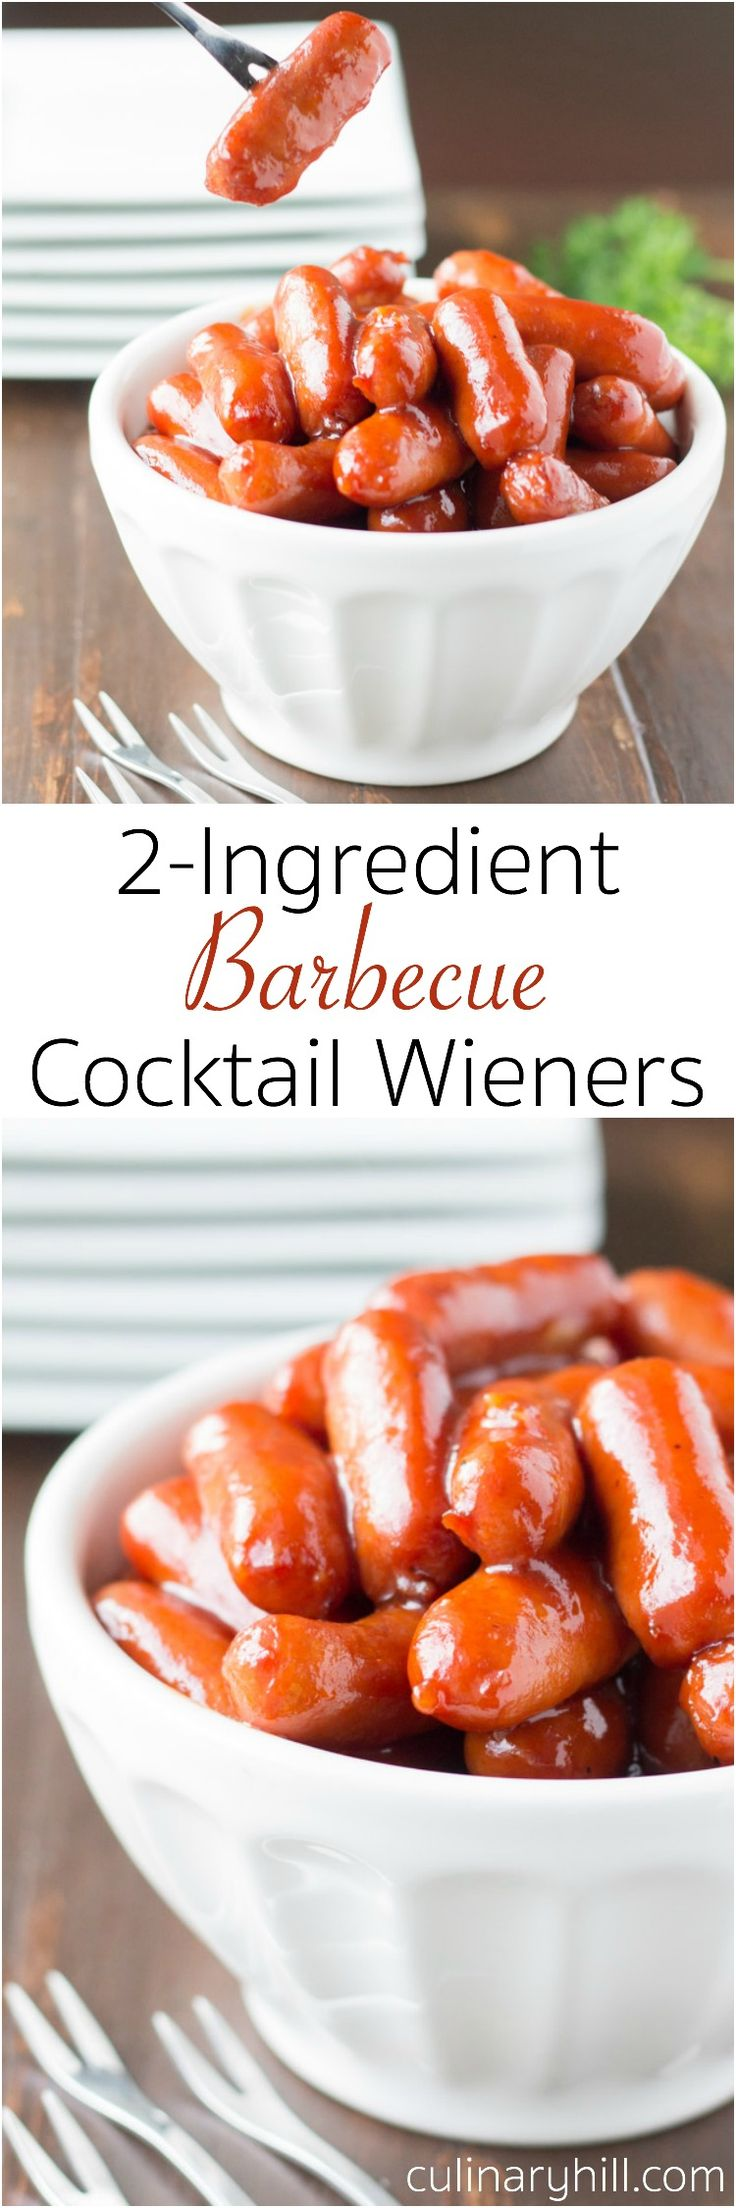 2-Ingredient Barbecue Little Smokies are the easiest appetizer you will ever make, whether you make them on the stove top or in a crock pot.